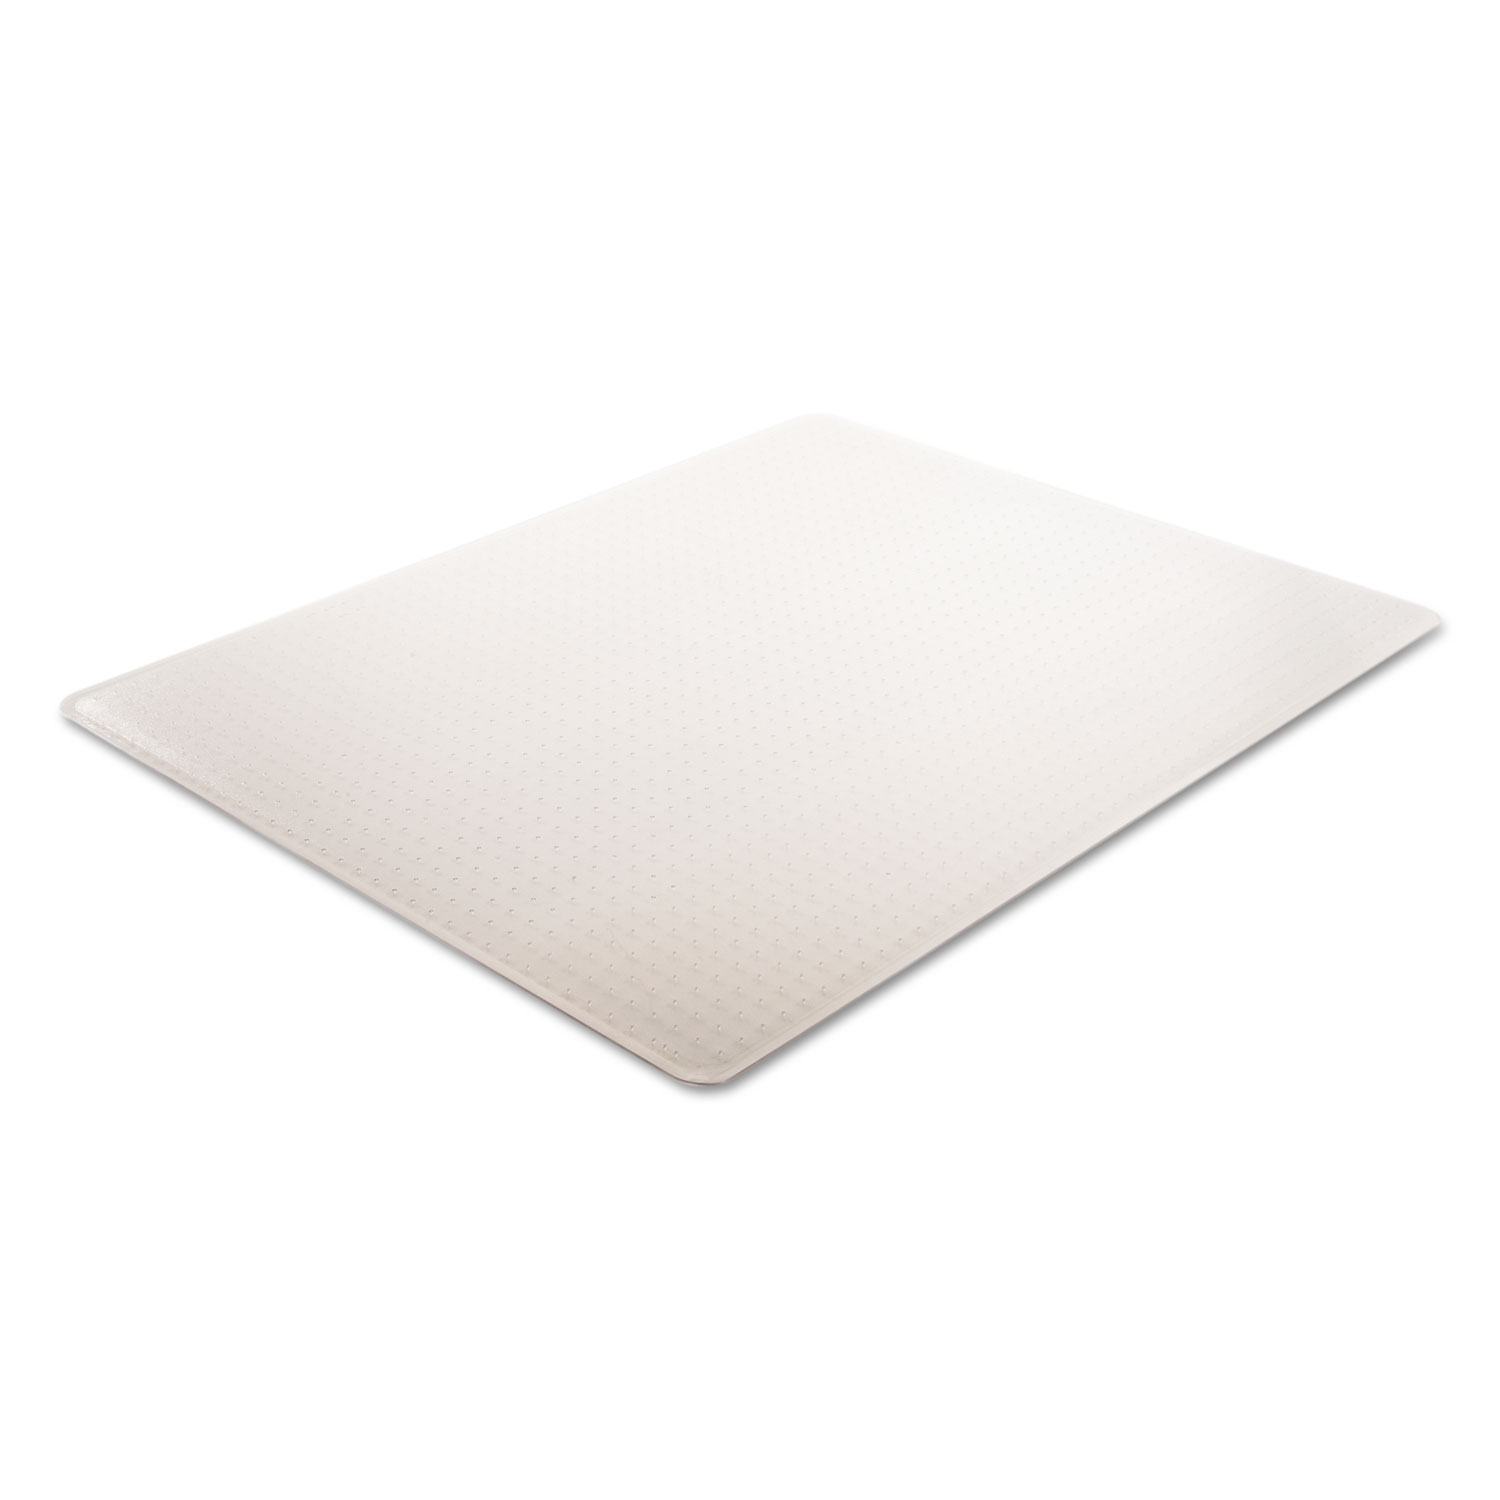 office chair mat 45 x 53 small cushions uk supermat frequent use by deflecto defcm14243